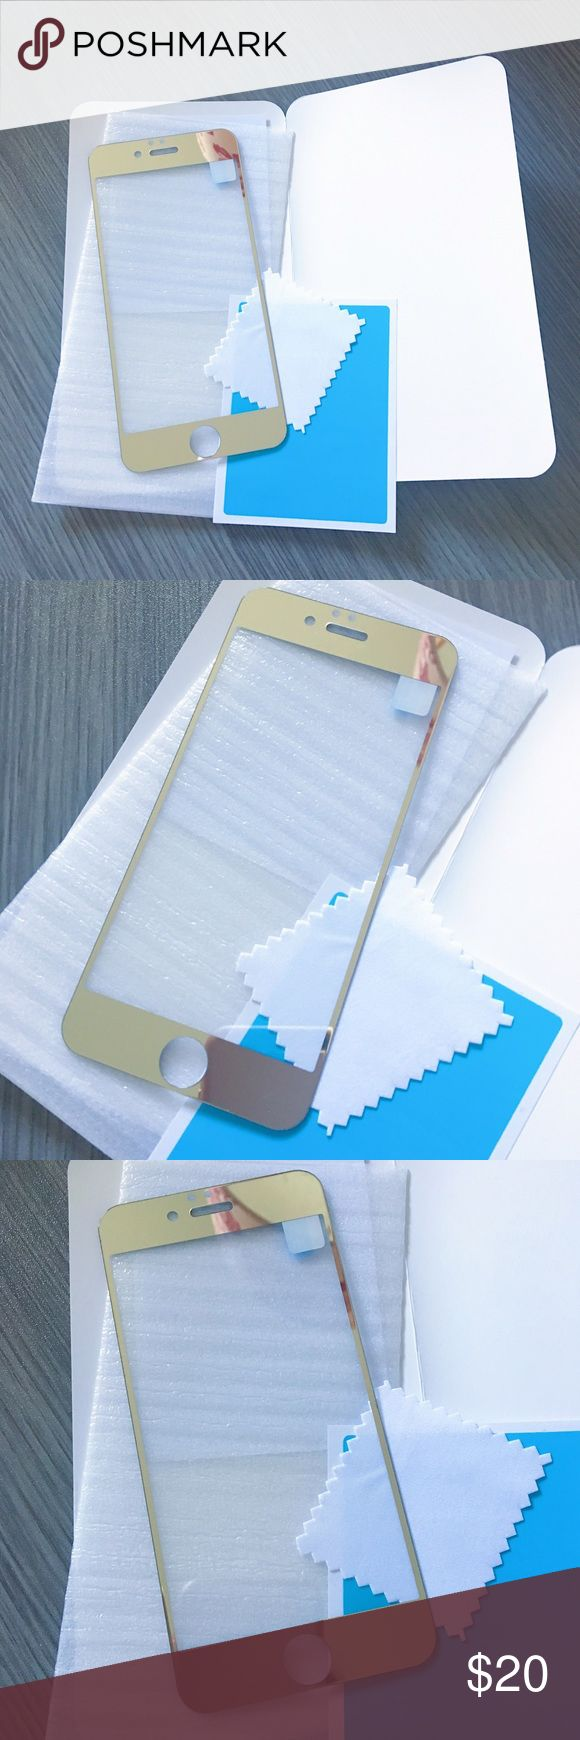 iPhone 6/6s 9H Tempered Glass Screen Protector Mirror effect gold premium tempered glass screen protecter. High definition clear, no loss of HD resolution, anti-scratch. Thickness of 0.3mm and 2.5 D rounded edge cut. Anti-shatter film, won't be sharp even when broken into small pieces. *DOES NOT FIT IPHONE 6+/6S+* Accessories Phone Cases